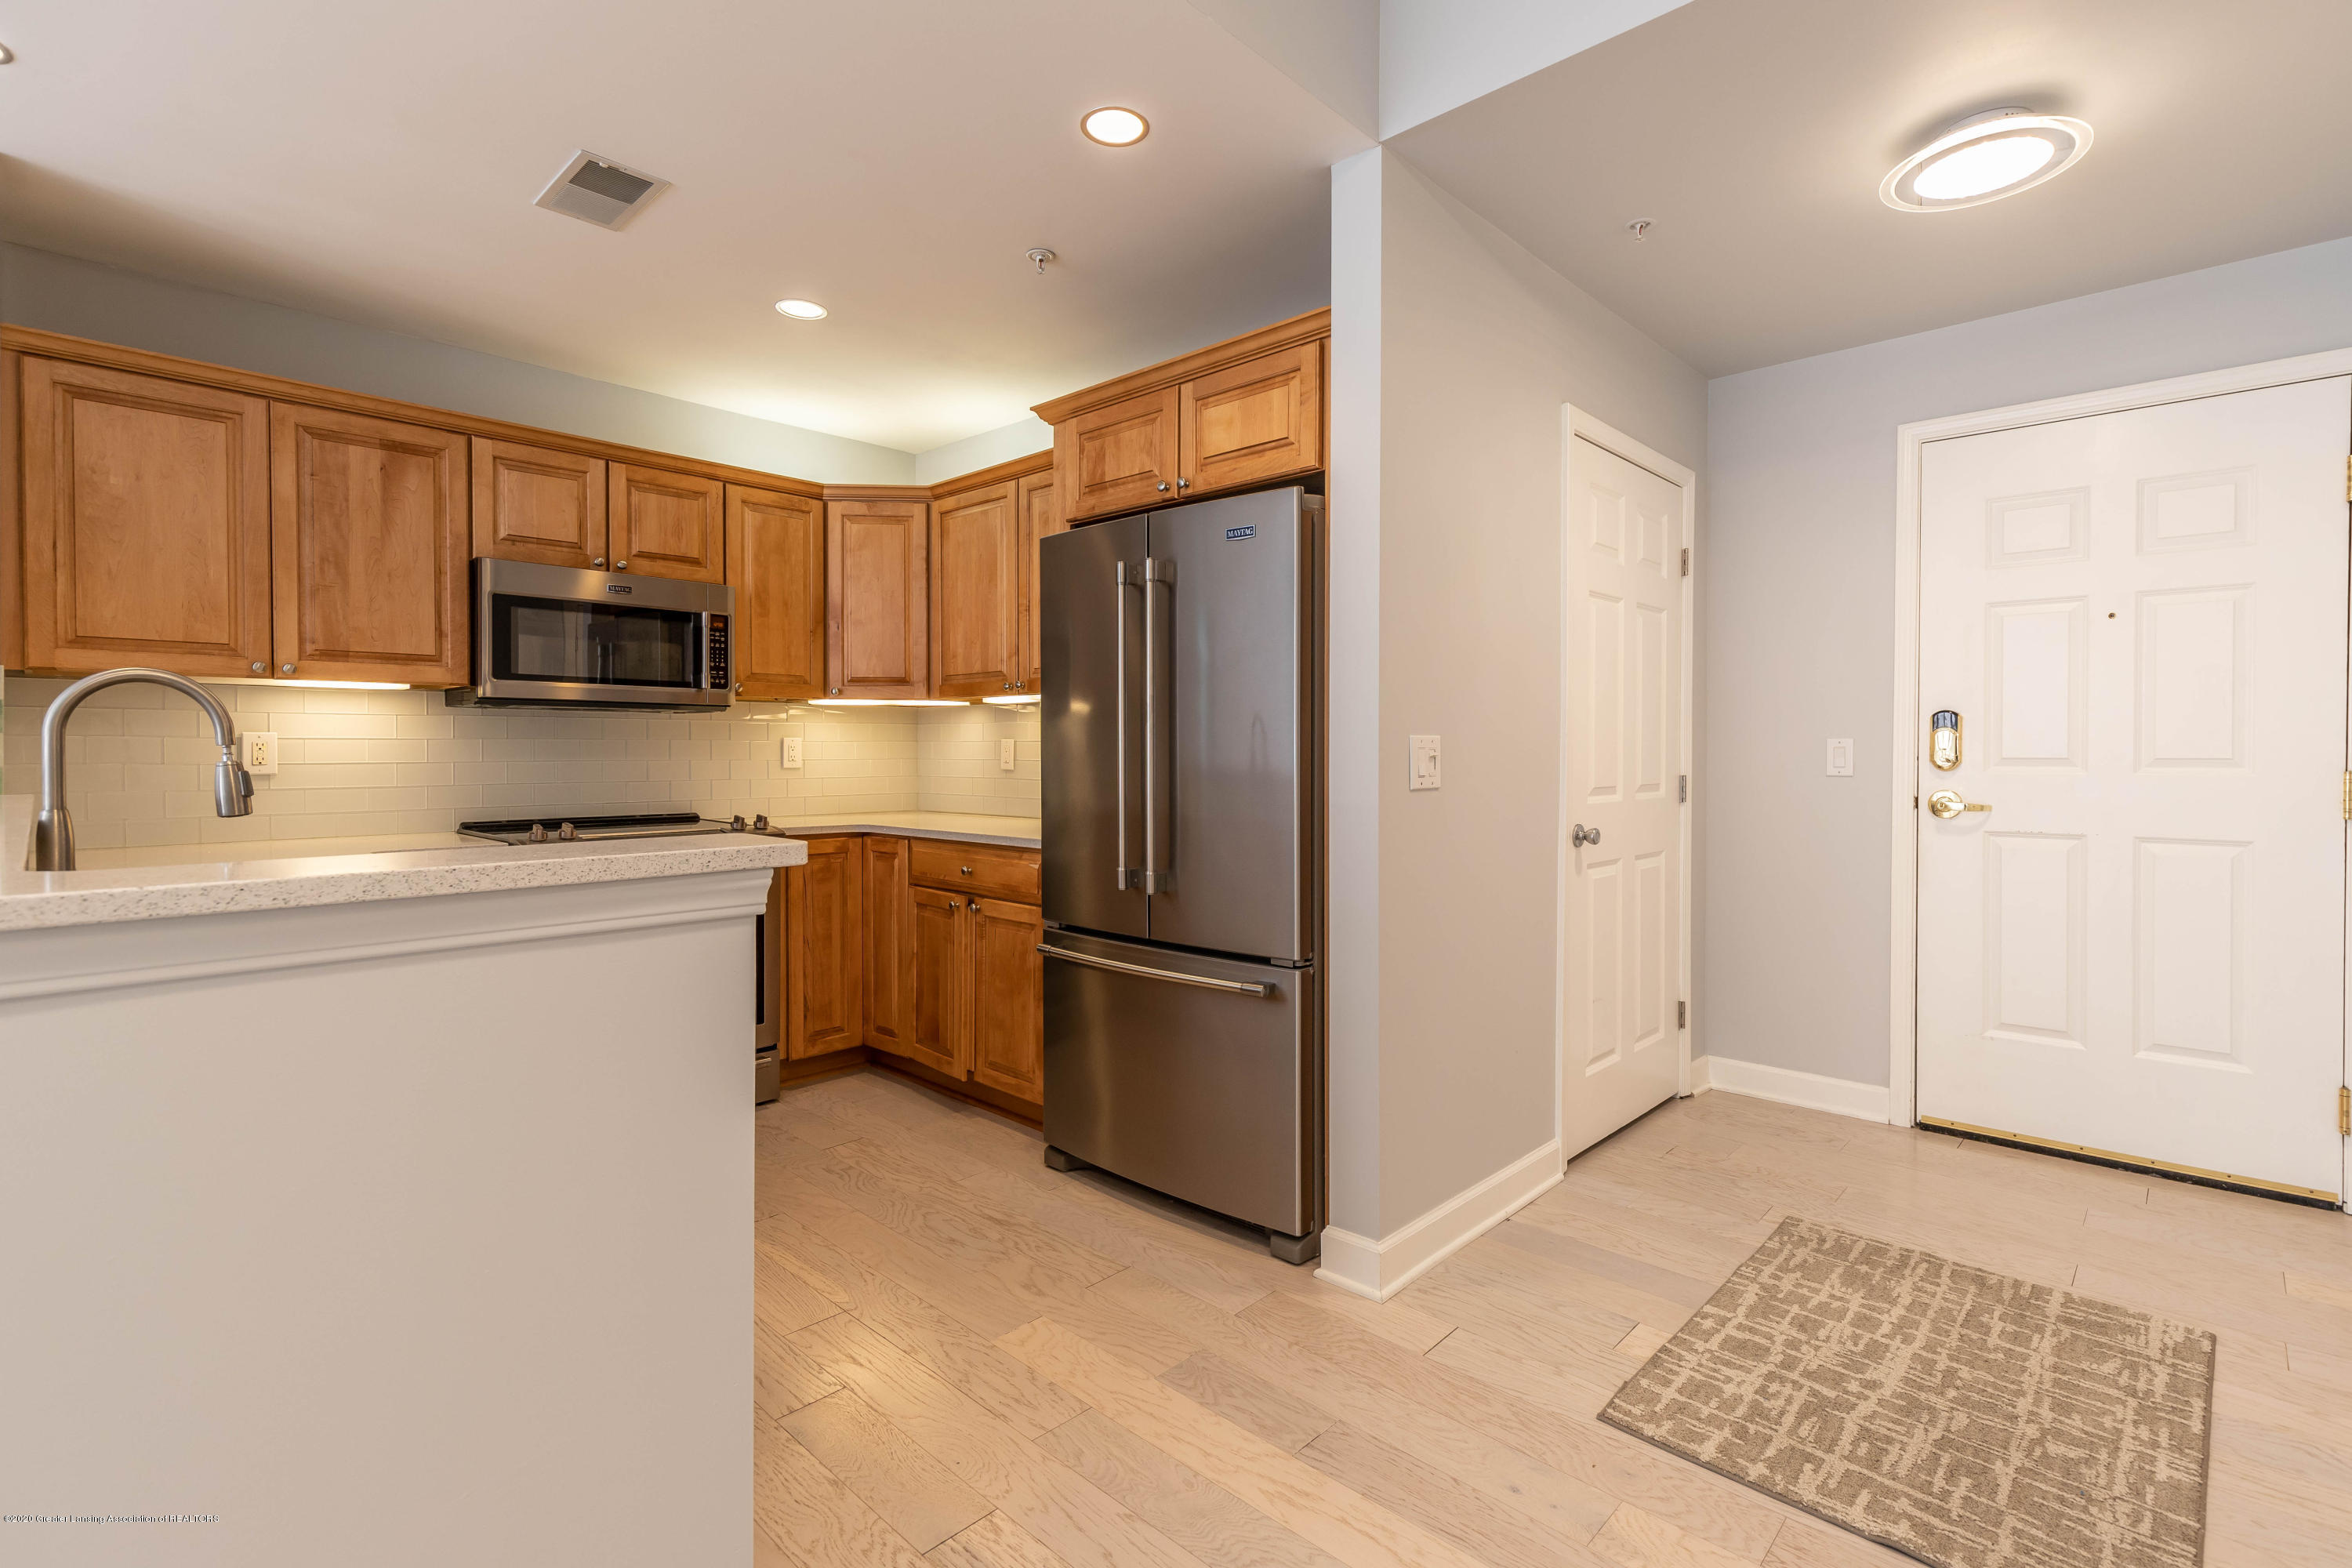 220 M. A. C. Ave Apt 313 - Kitchen - 9